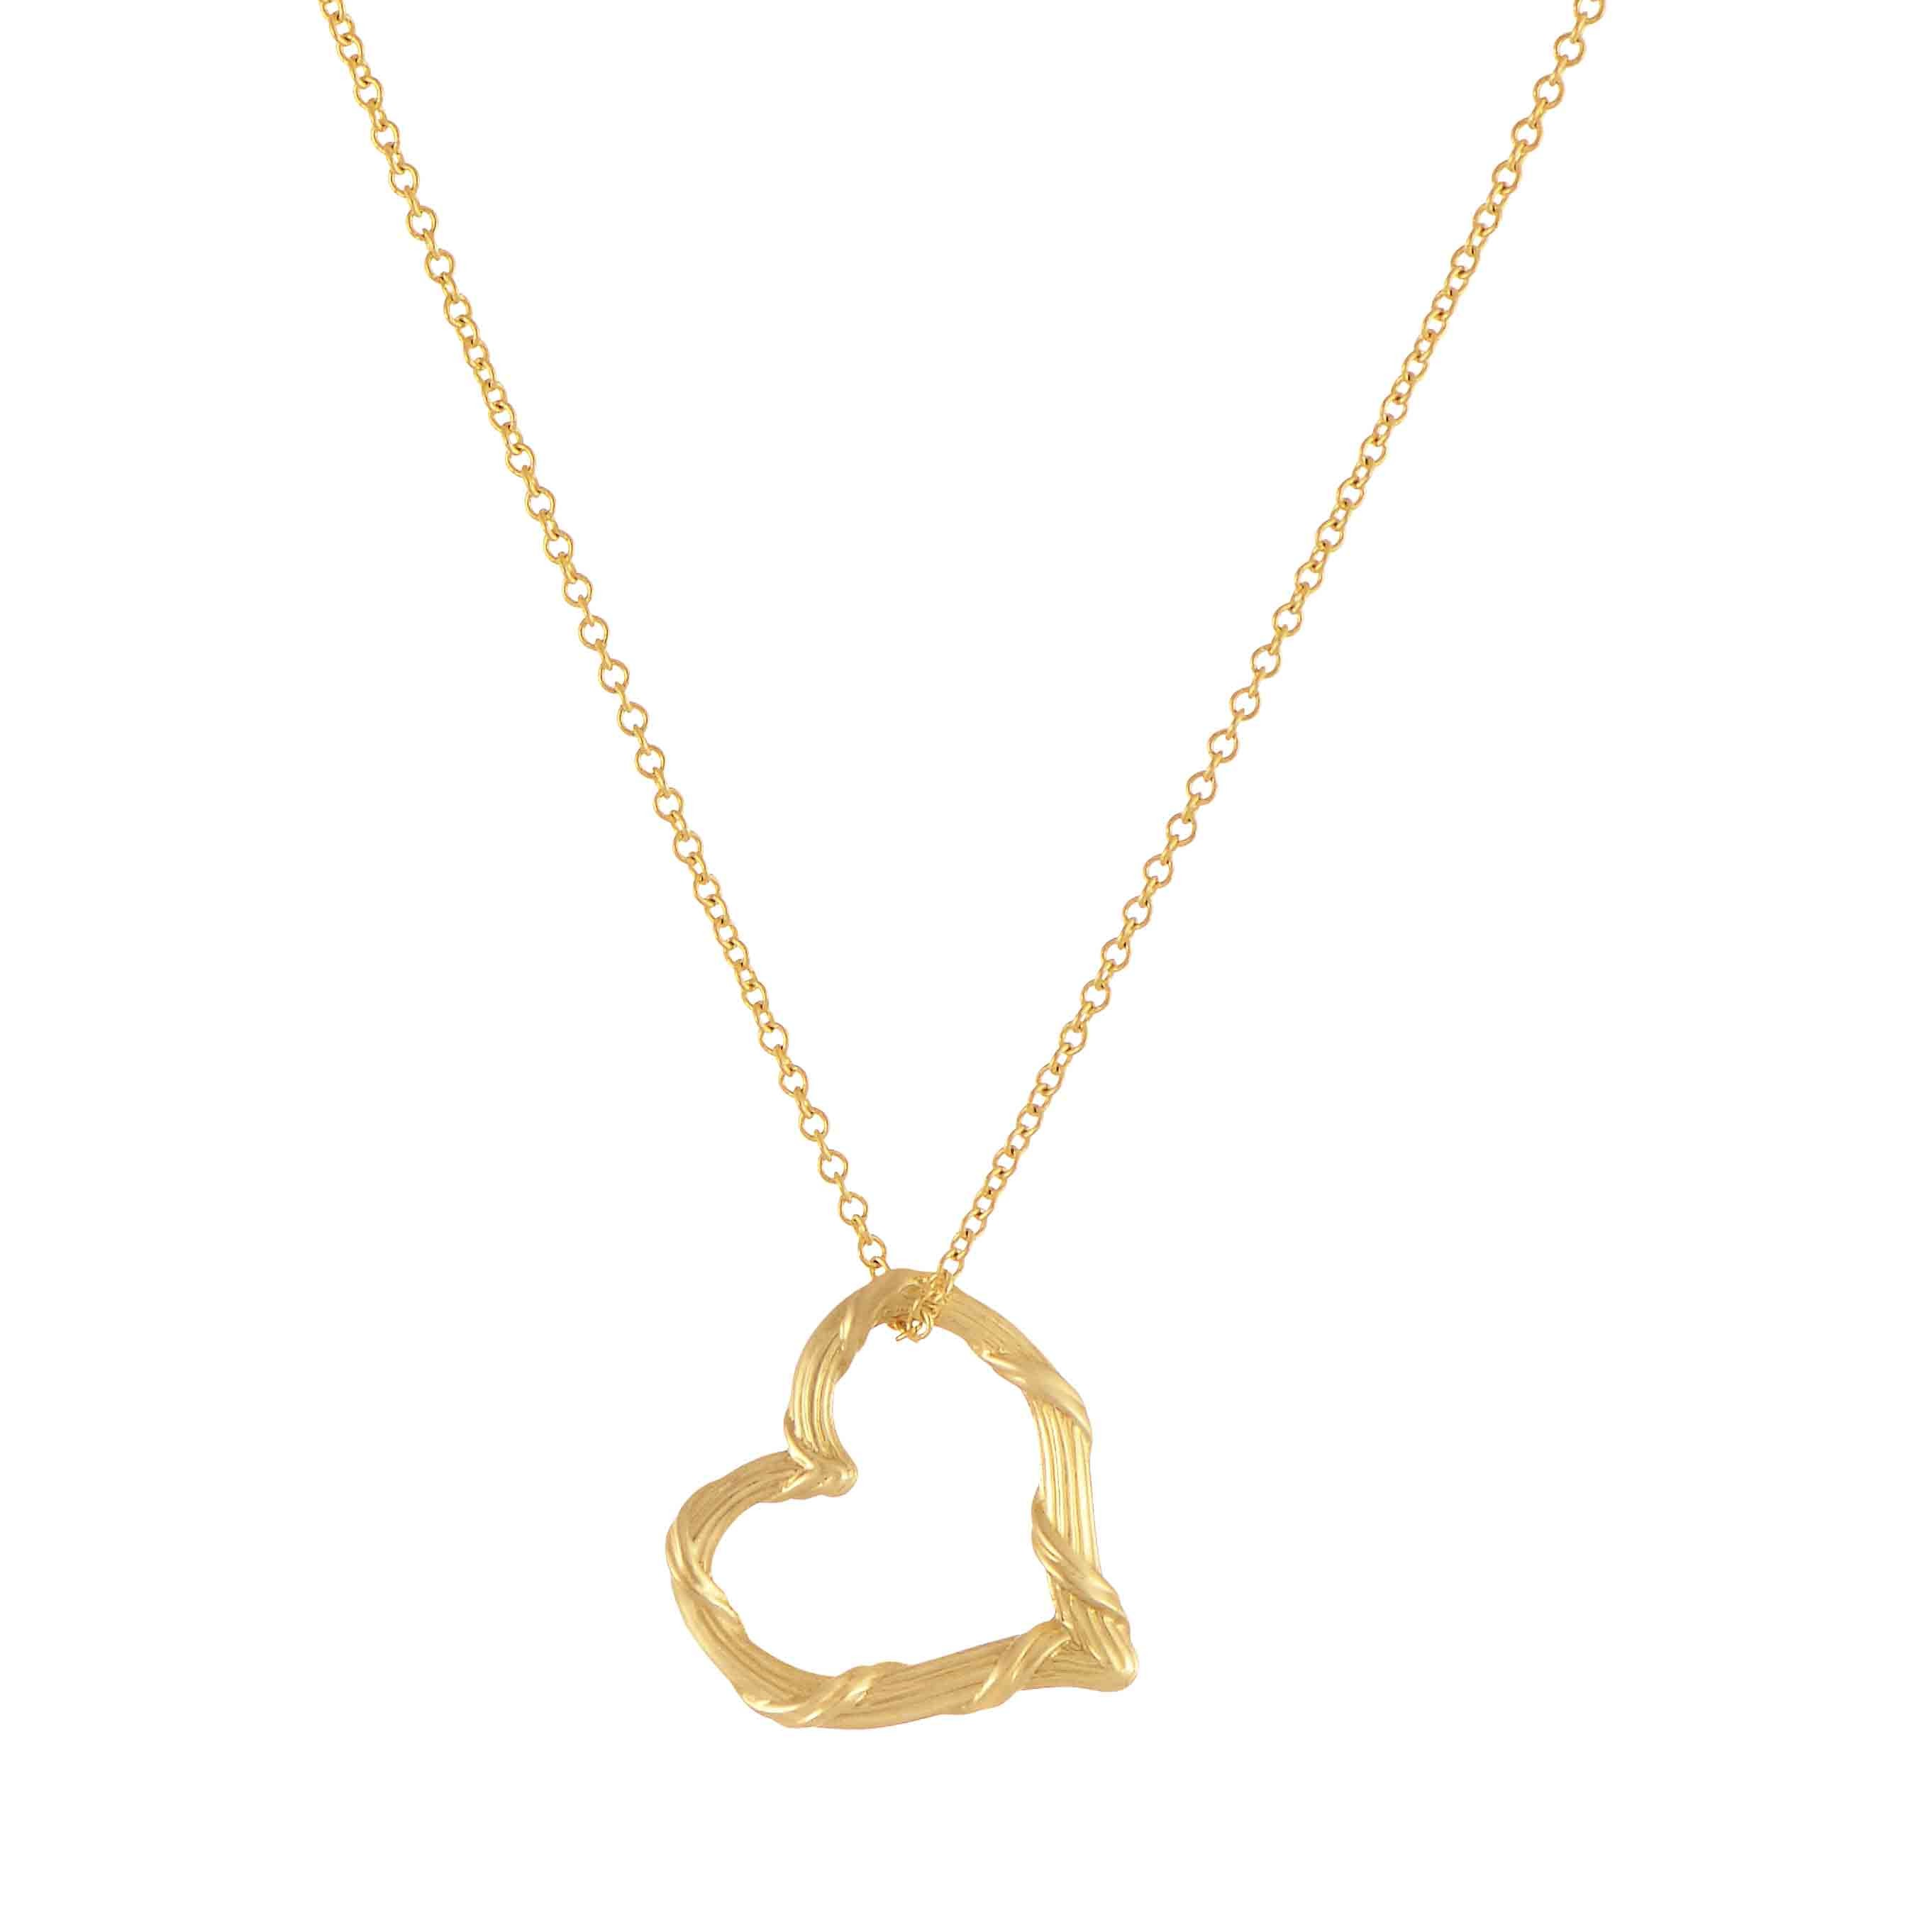 "Heritage Mini Floating Heart Necklace in 18K Yellow Gold 16"" Chain"